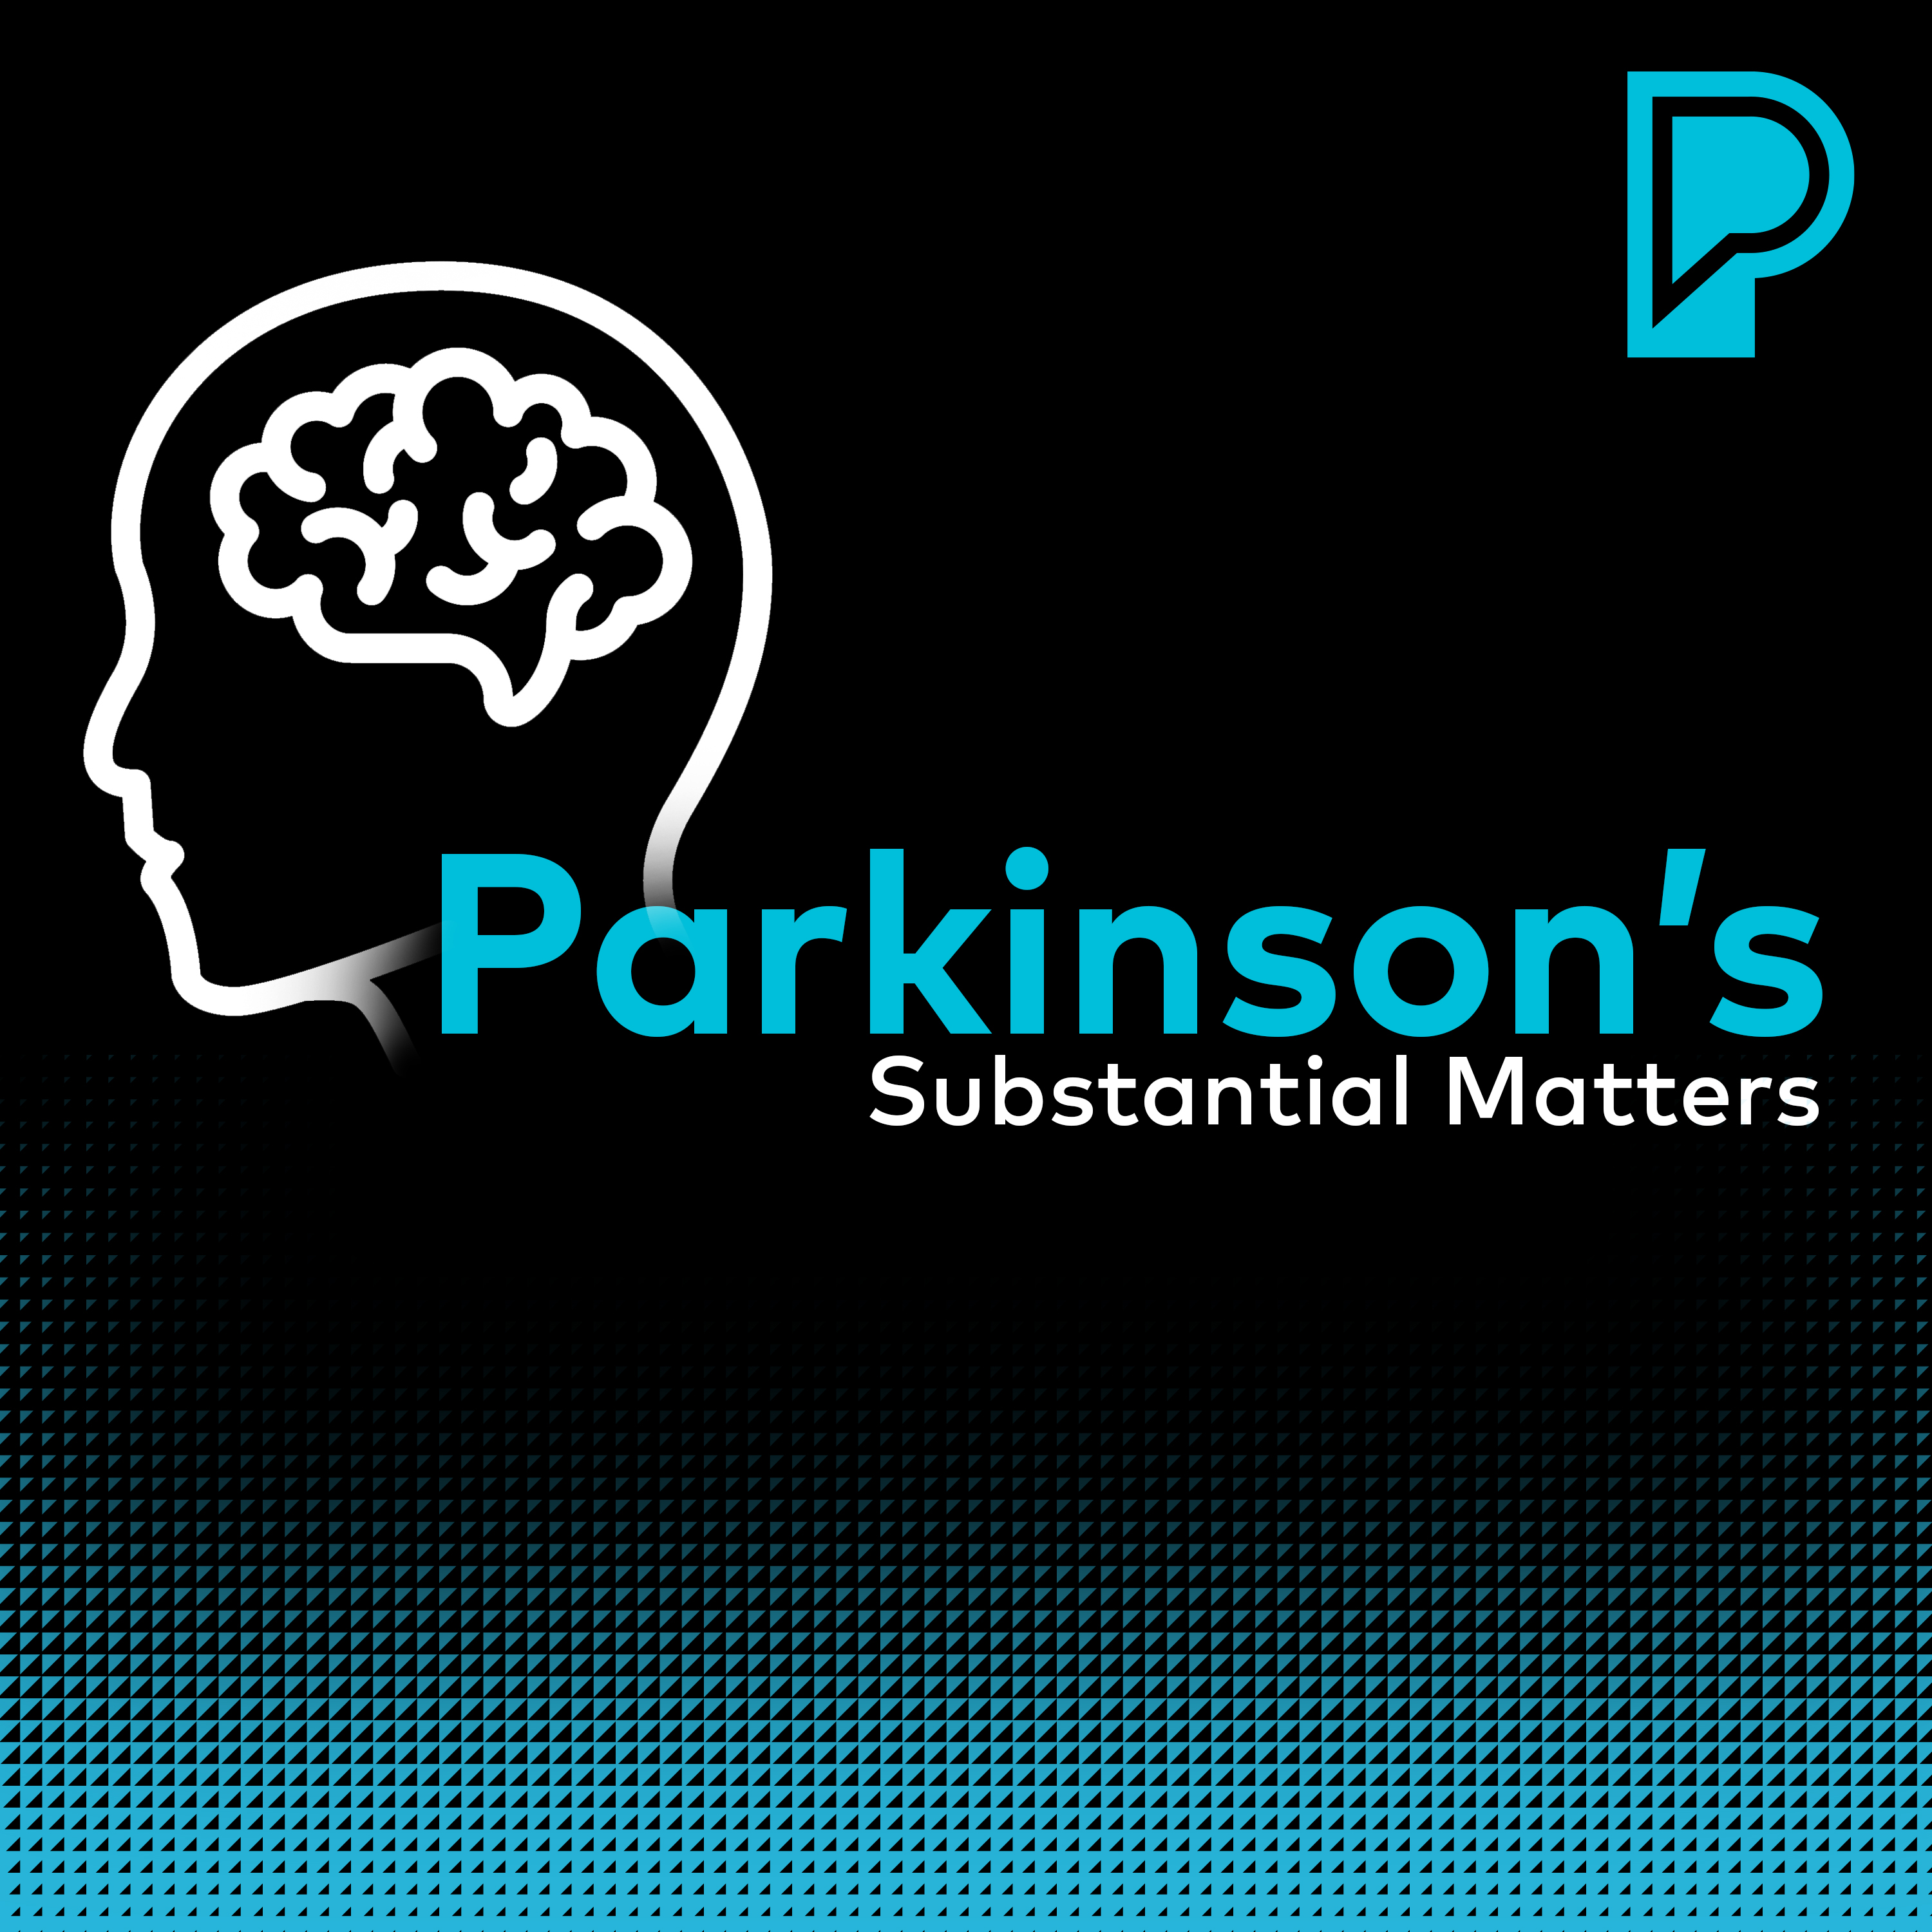 The Importance of Good Nutrition for People with Parkinson's